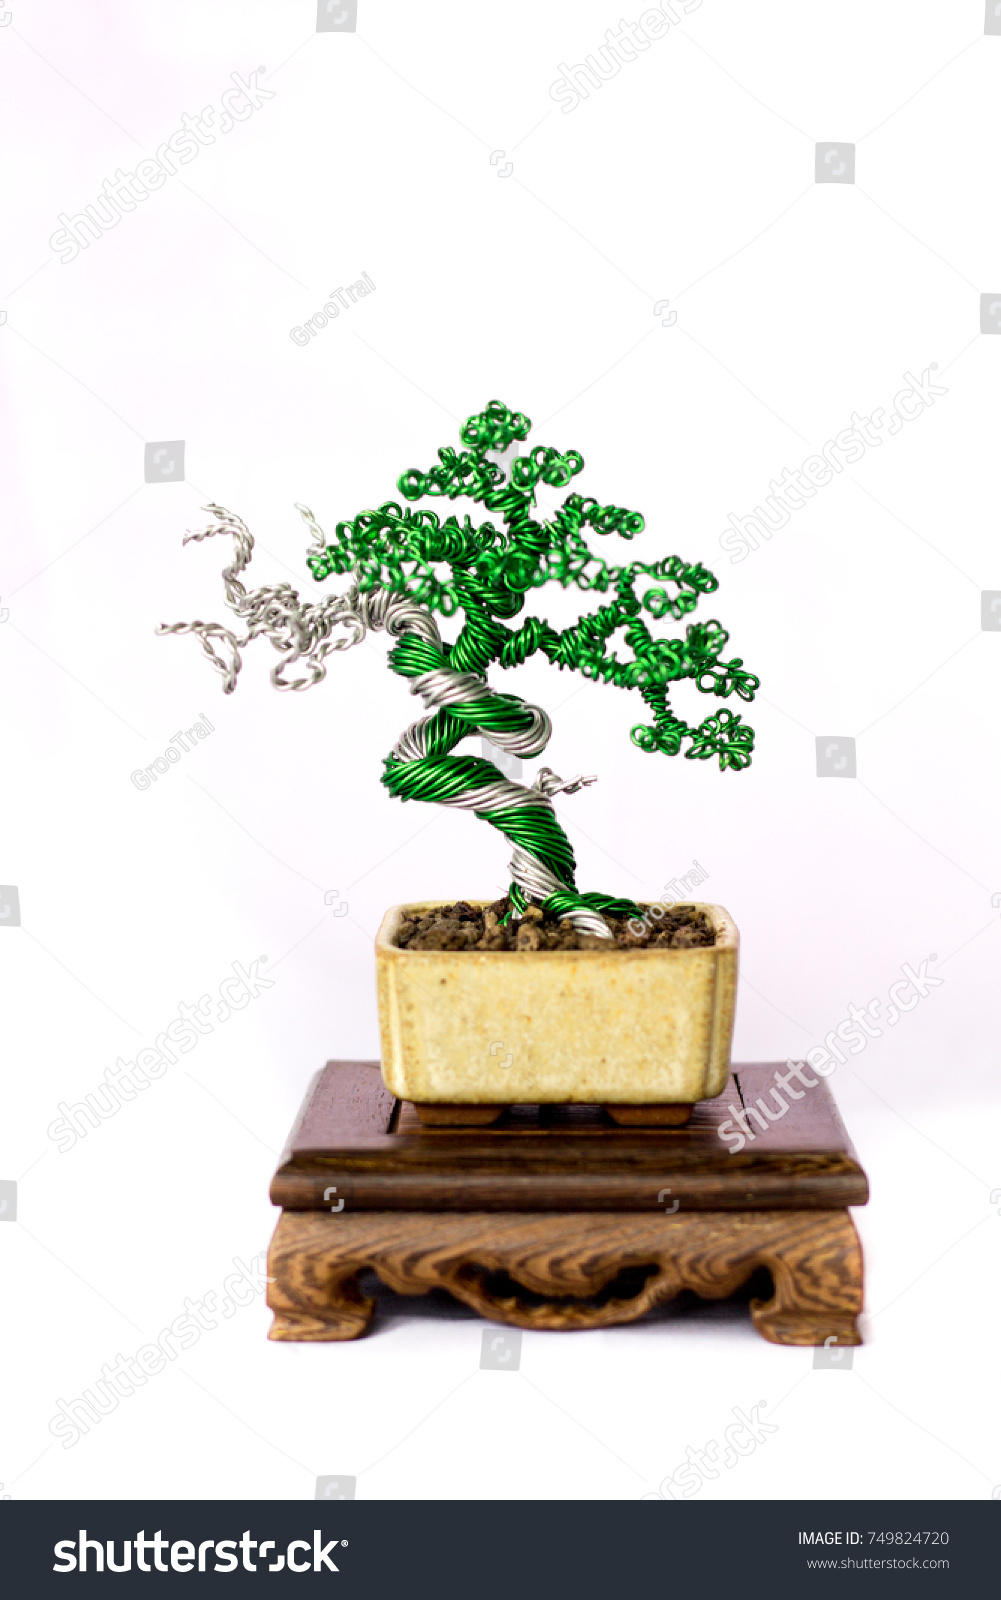 Tree Japanese Juniper Bonsai Simpaku Making Stock Photo Edit Now Wiring In From Wire On White Background